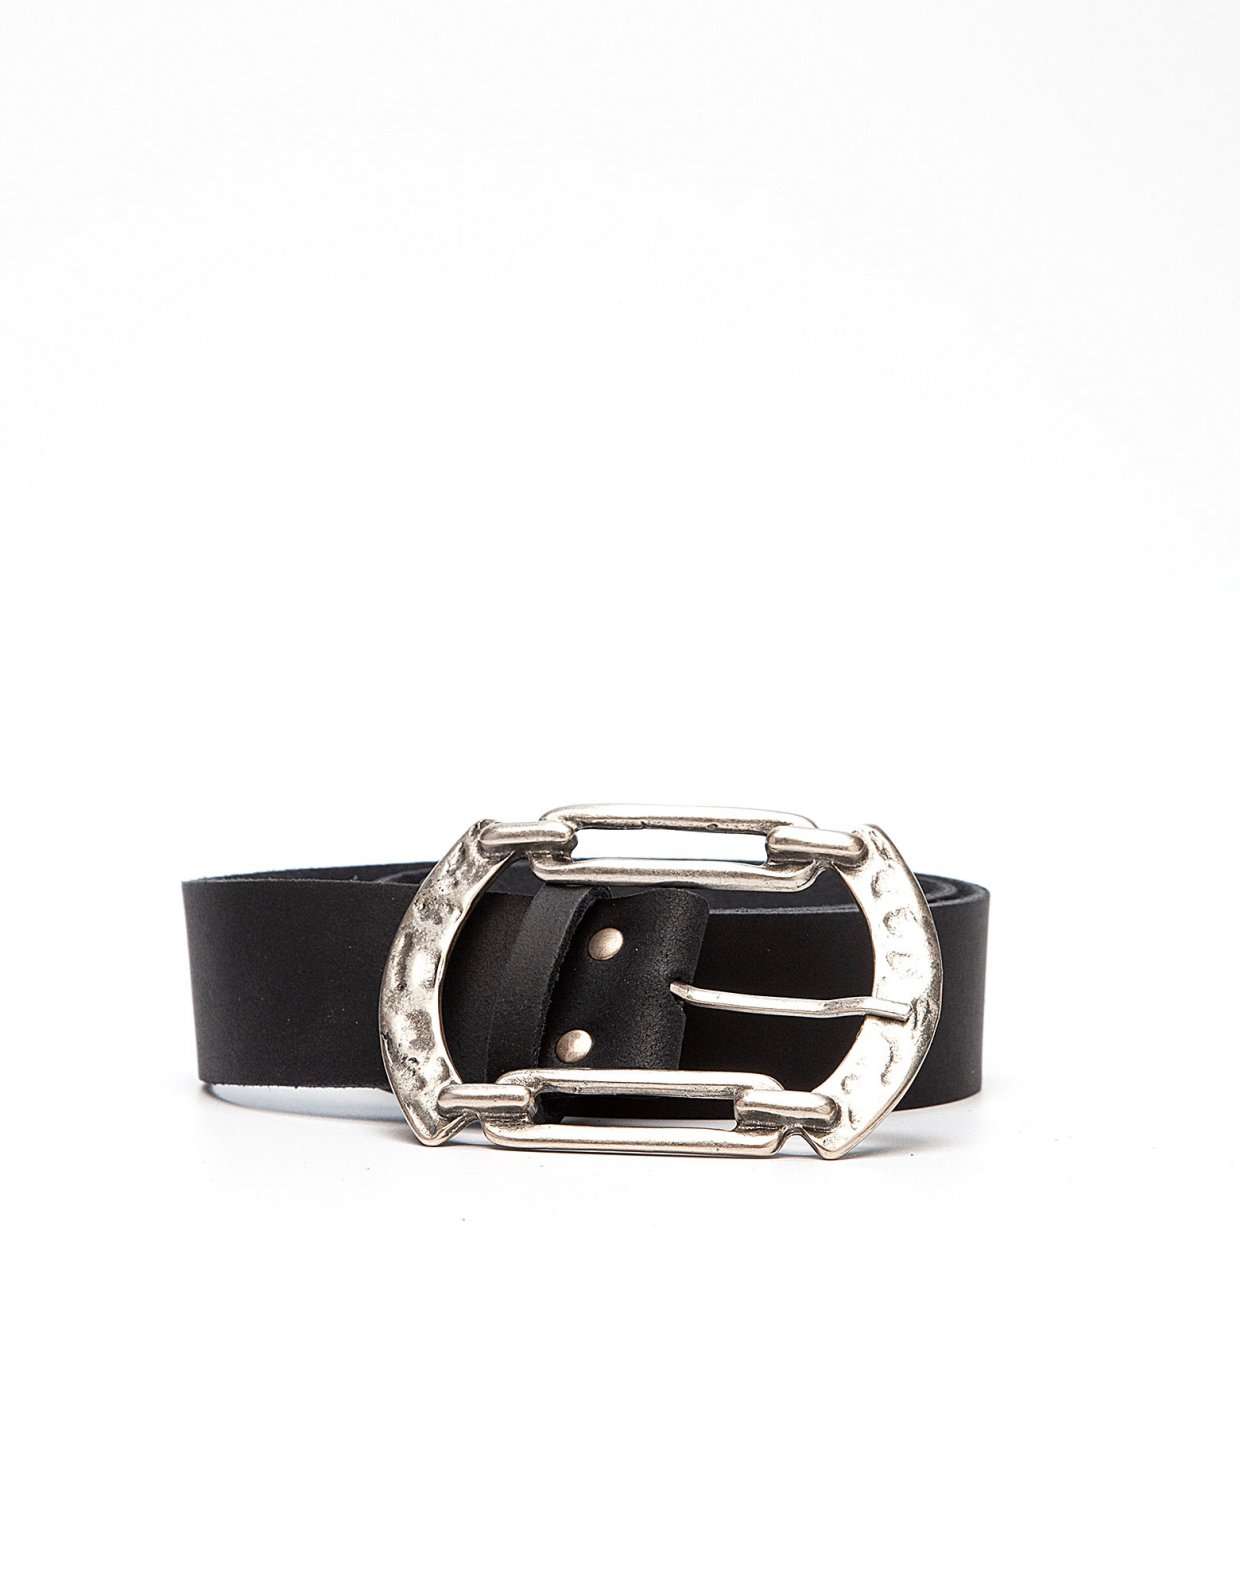 Peace & Chaos Connection leather belt black